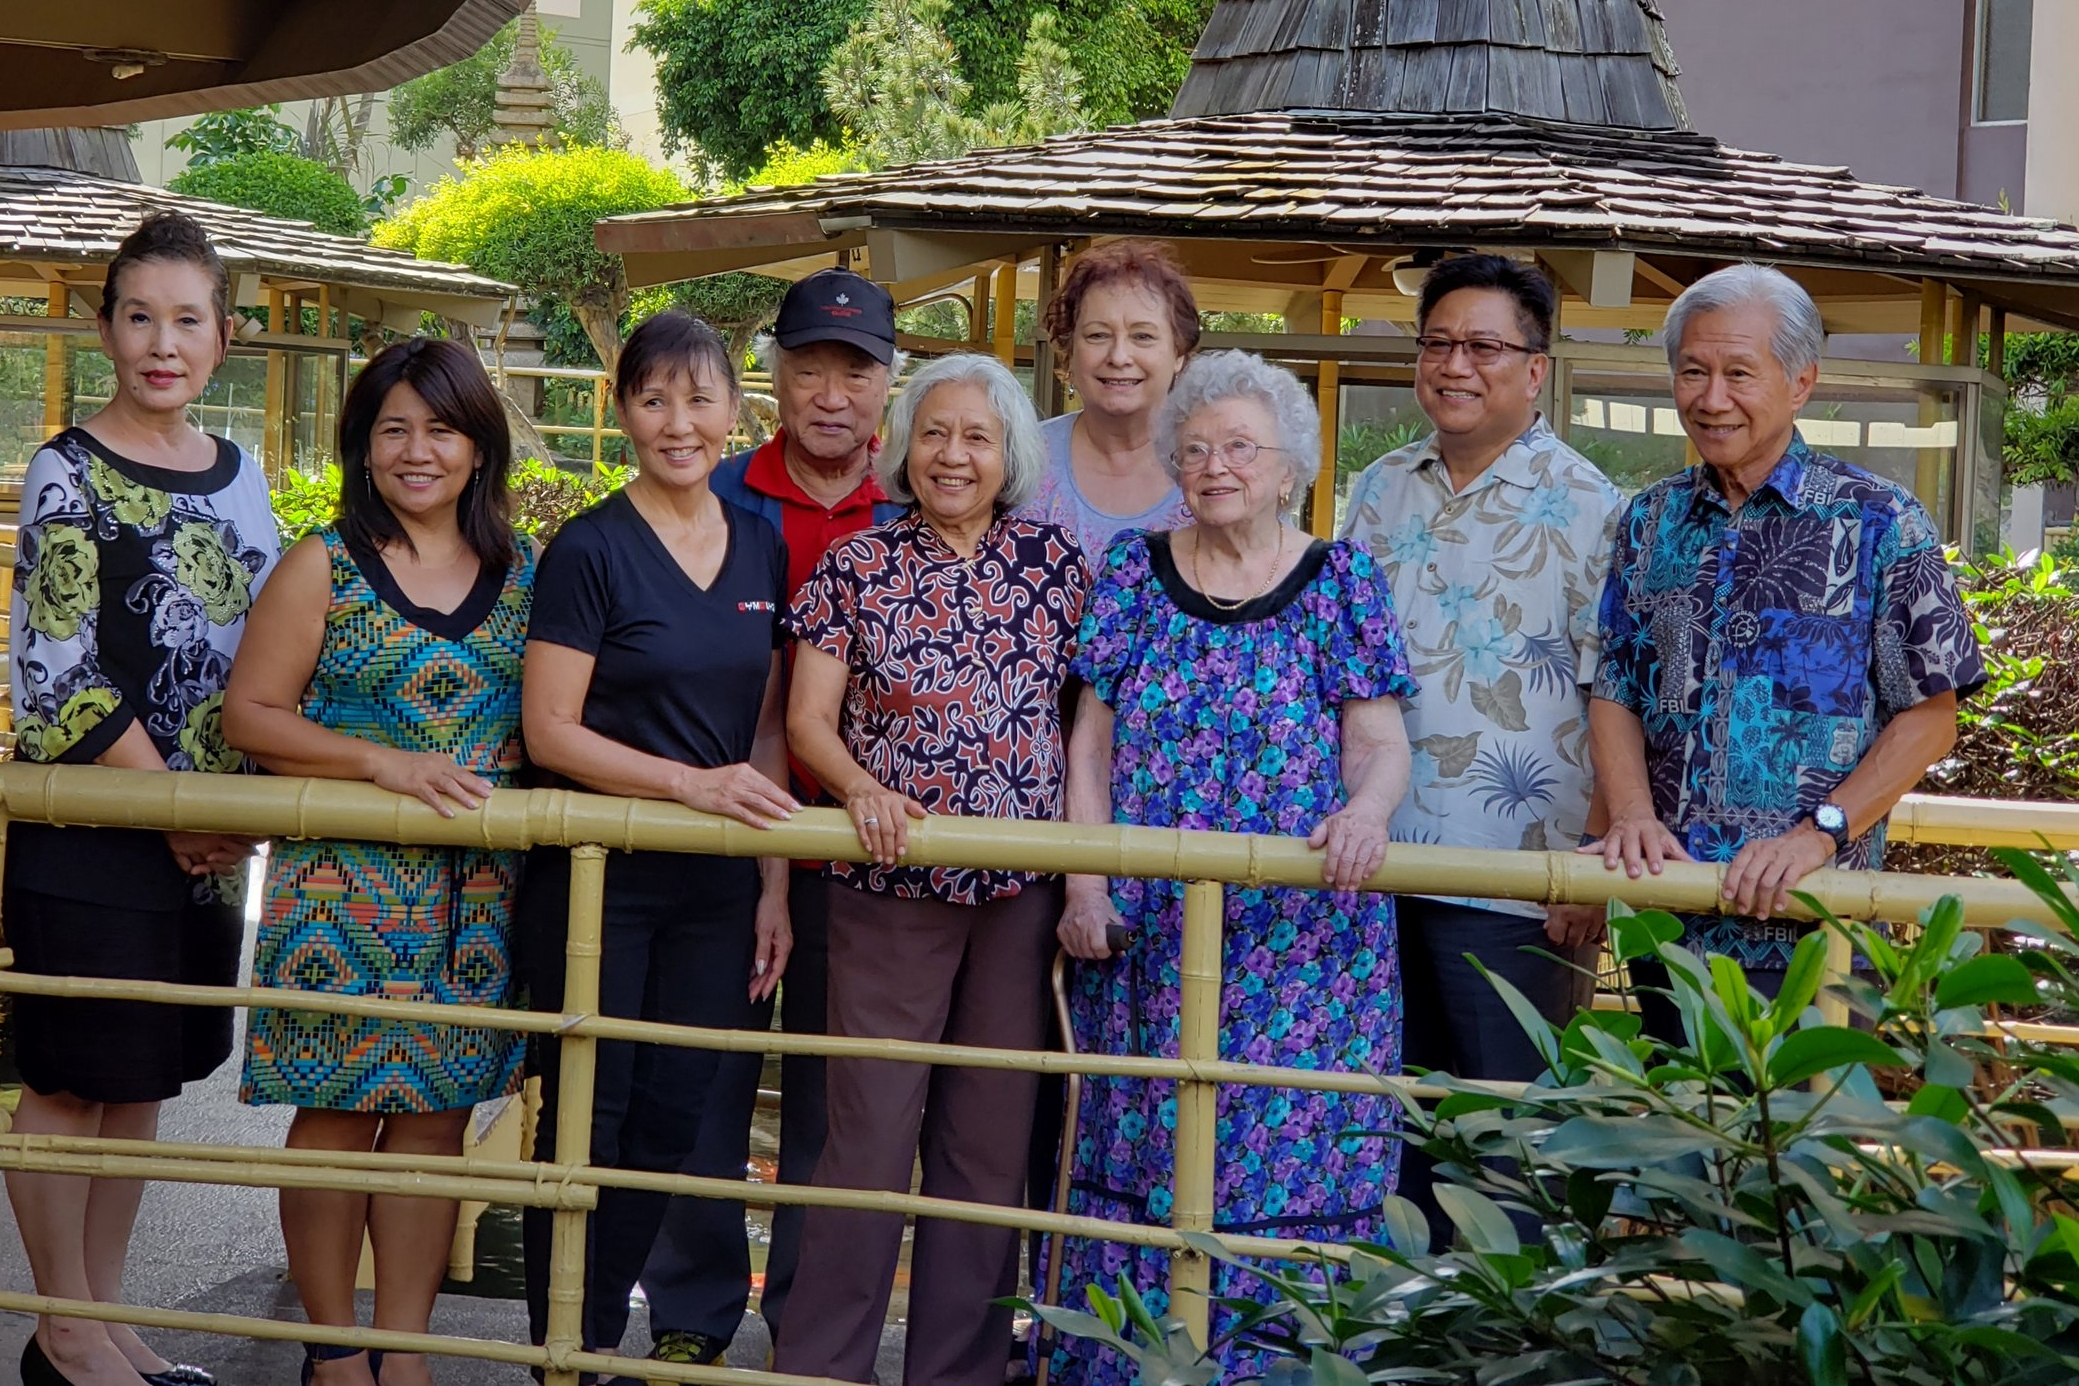 On November 25, 2018, Ethnic Education Hawai'i welcomed the following individuals to join its Board of Directors:  Amy Agbayani (middle), Joy Bounds (not pictured), Agnes Malate (second from left), Larry Ordonez (second from right), Myongsup Shin (wearing hat)